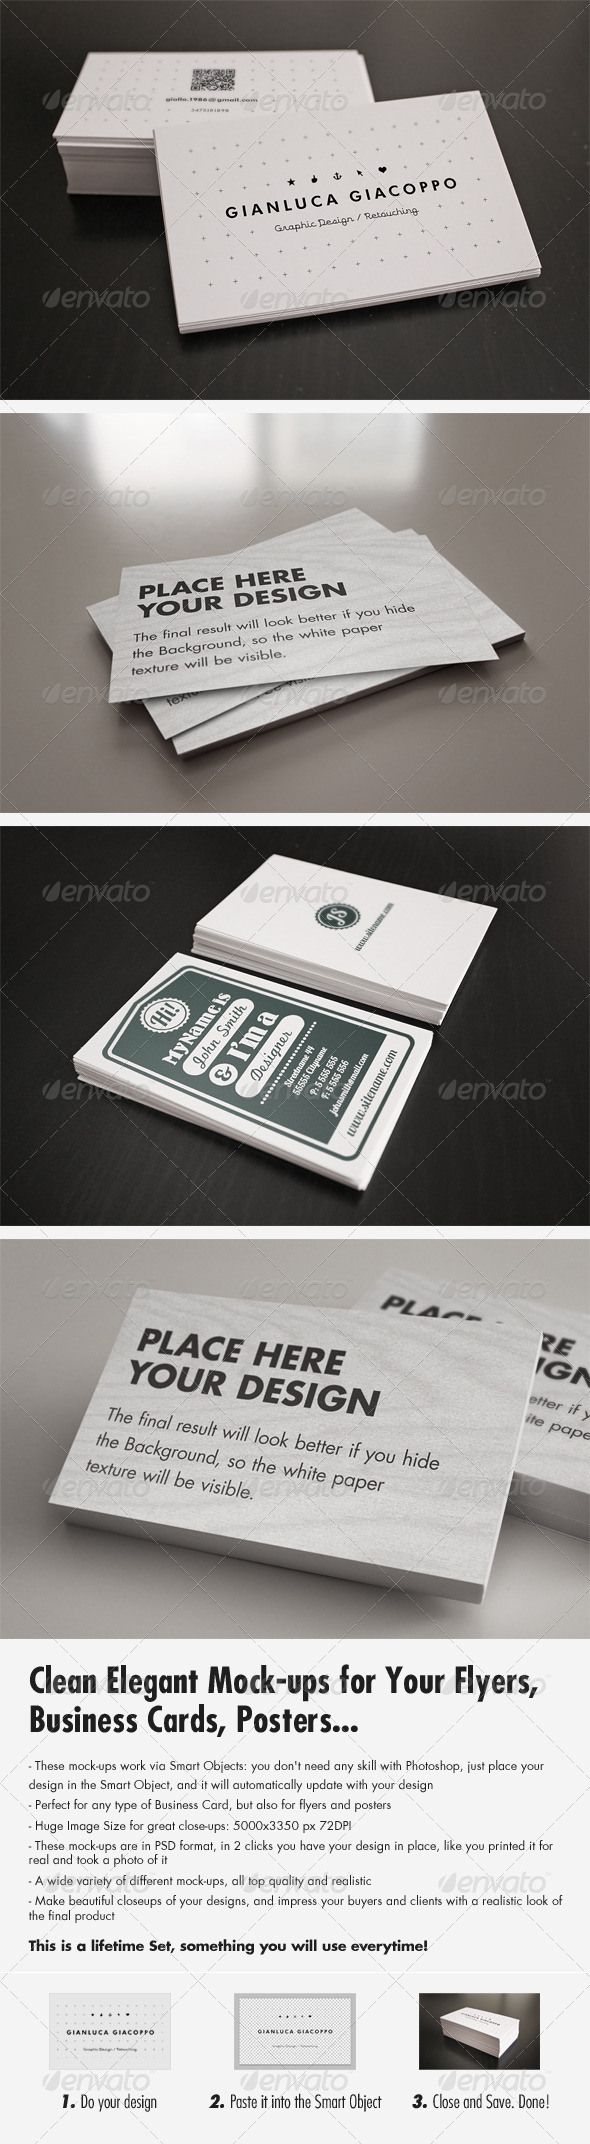 Flyer/Business Card Clean Realistic Mock-up Set 2 - Business Cards Print